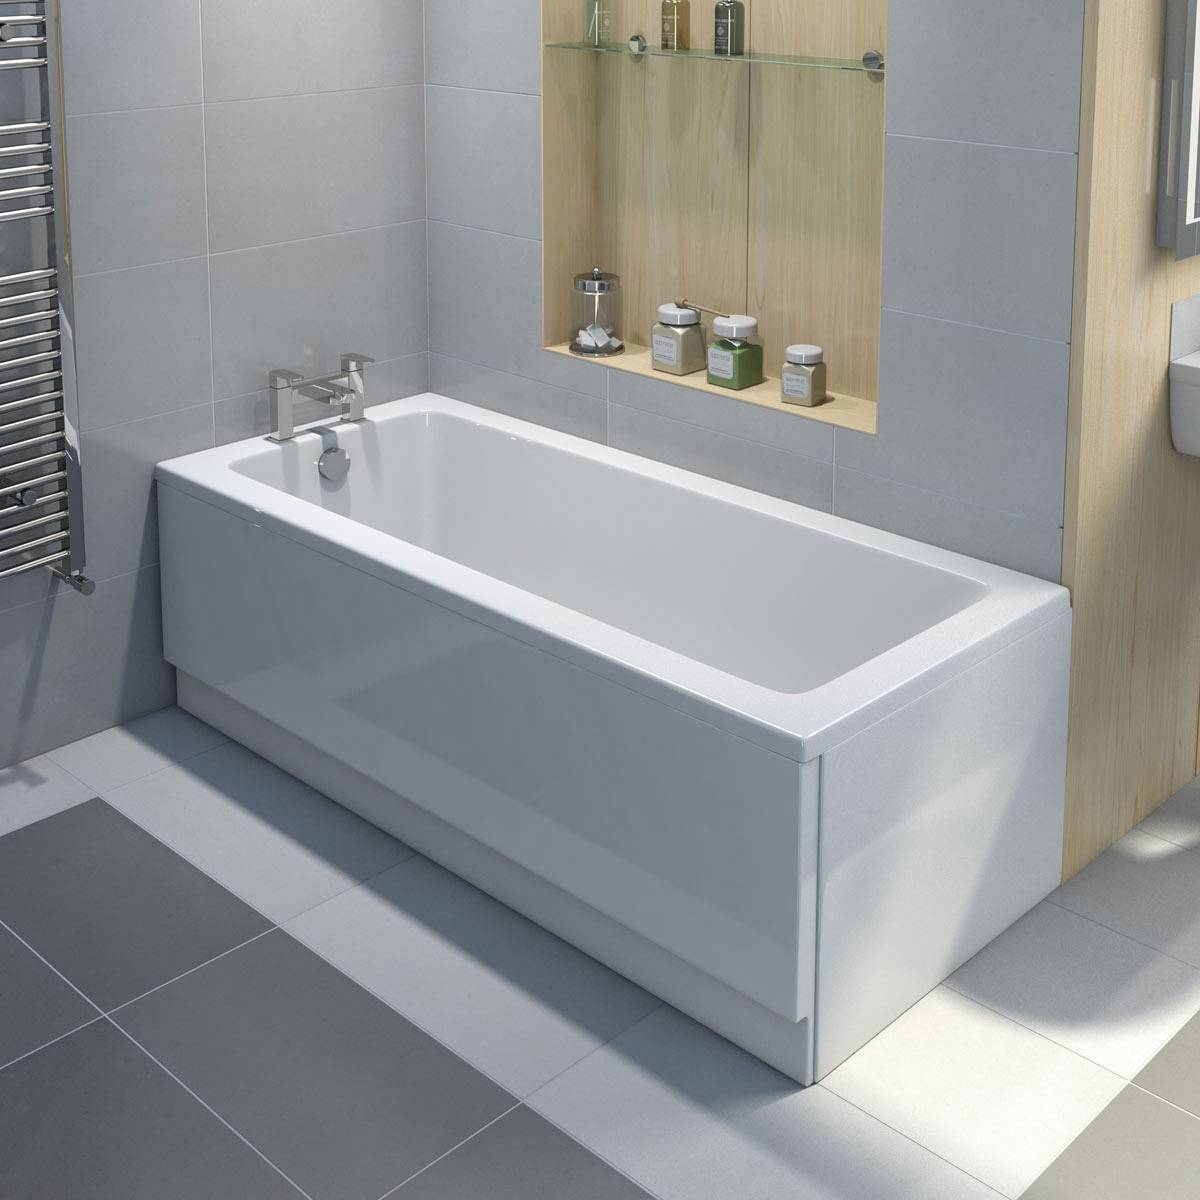 Acrylic v steel baths – Which is for me? | VictoriaPlum.com